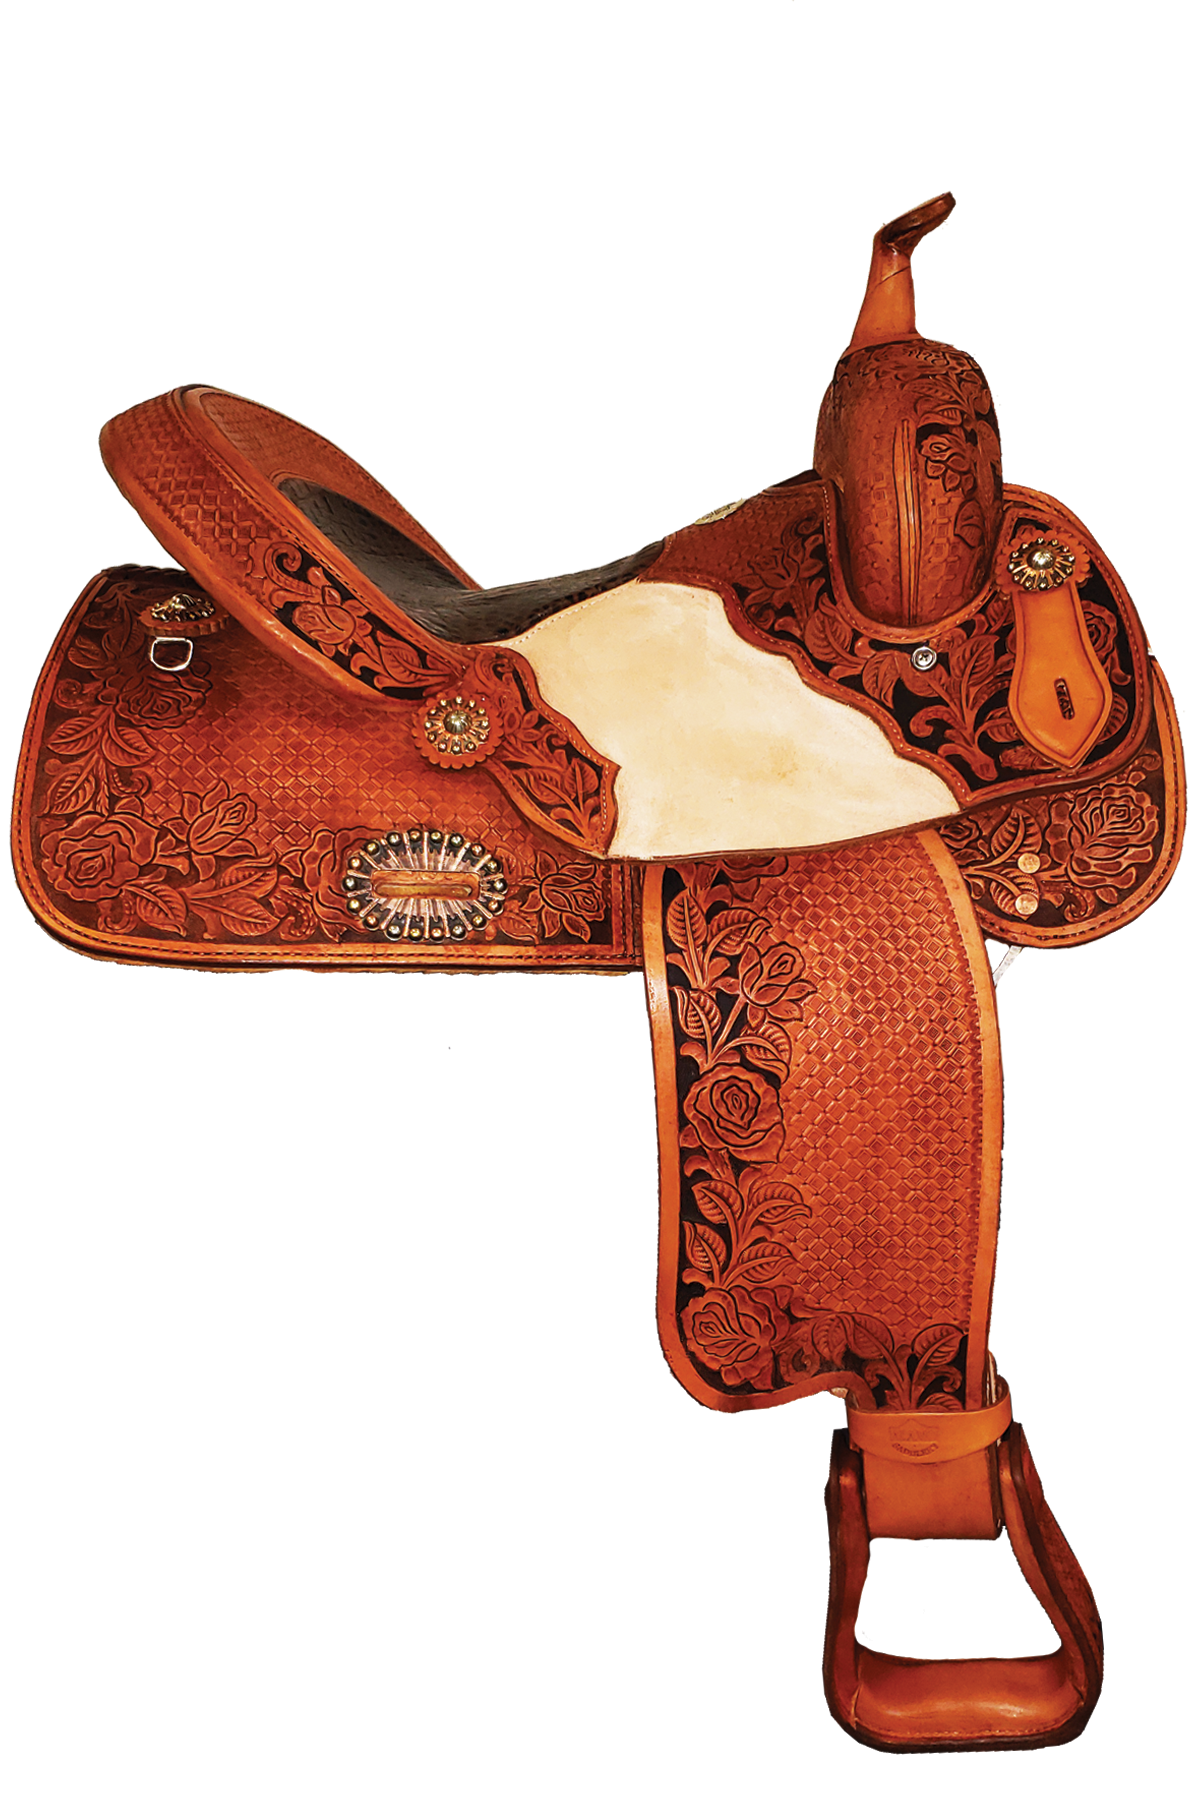 SD-6 Wild Rose Barrel Saddle with Jockey tooled Overlay